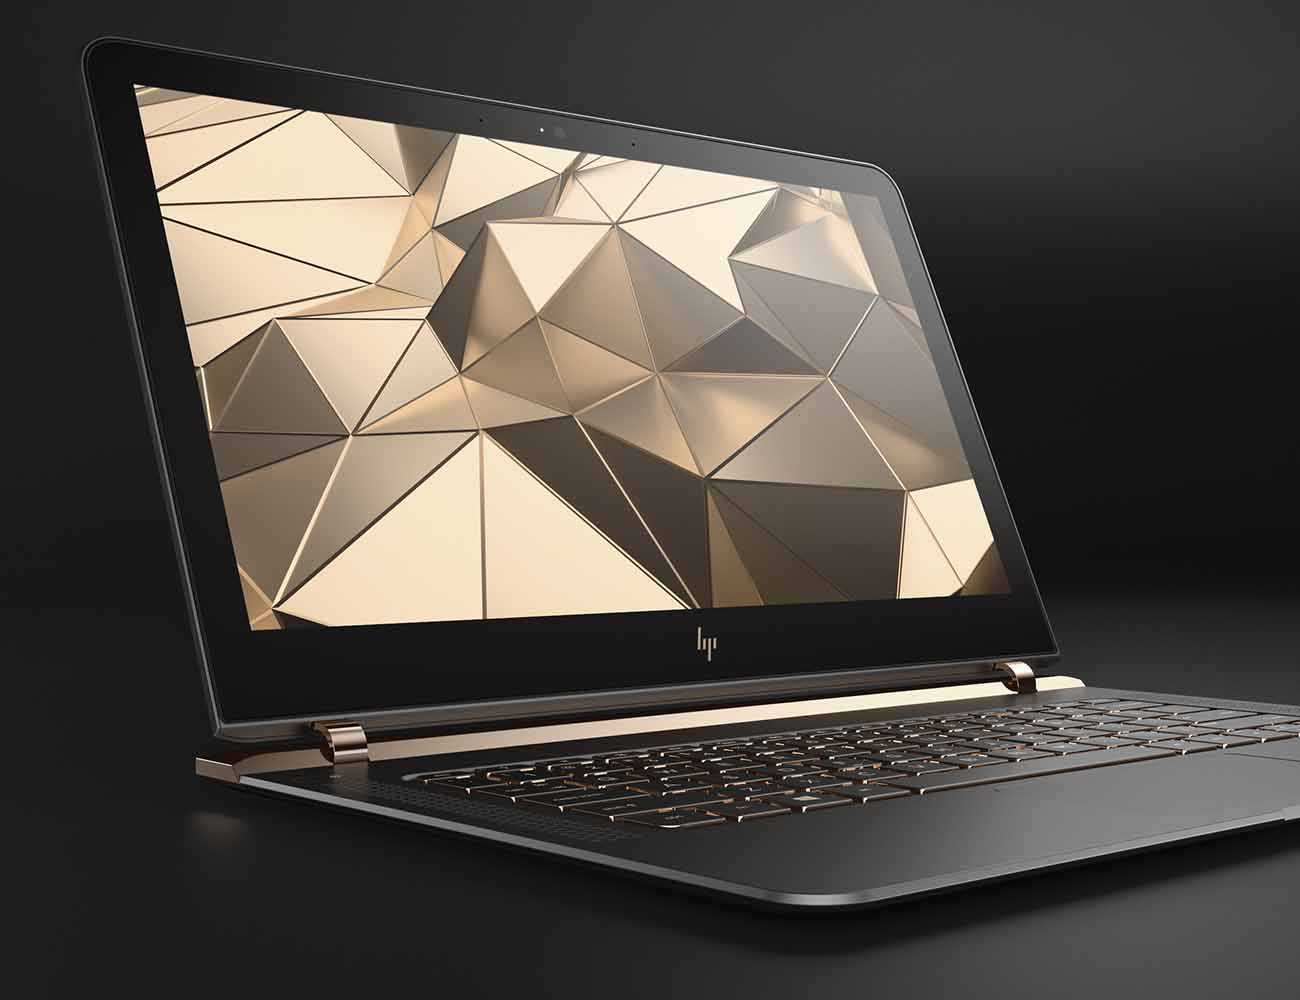 HP+Spectre+%26%238211%3B+The+World%26%238217%3Bs+Thinnest+Laptop